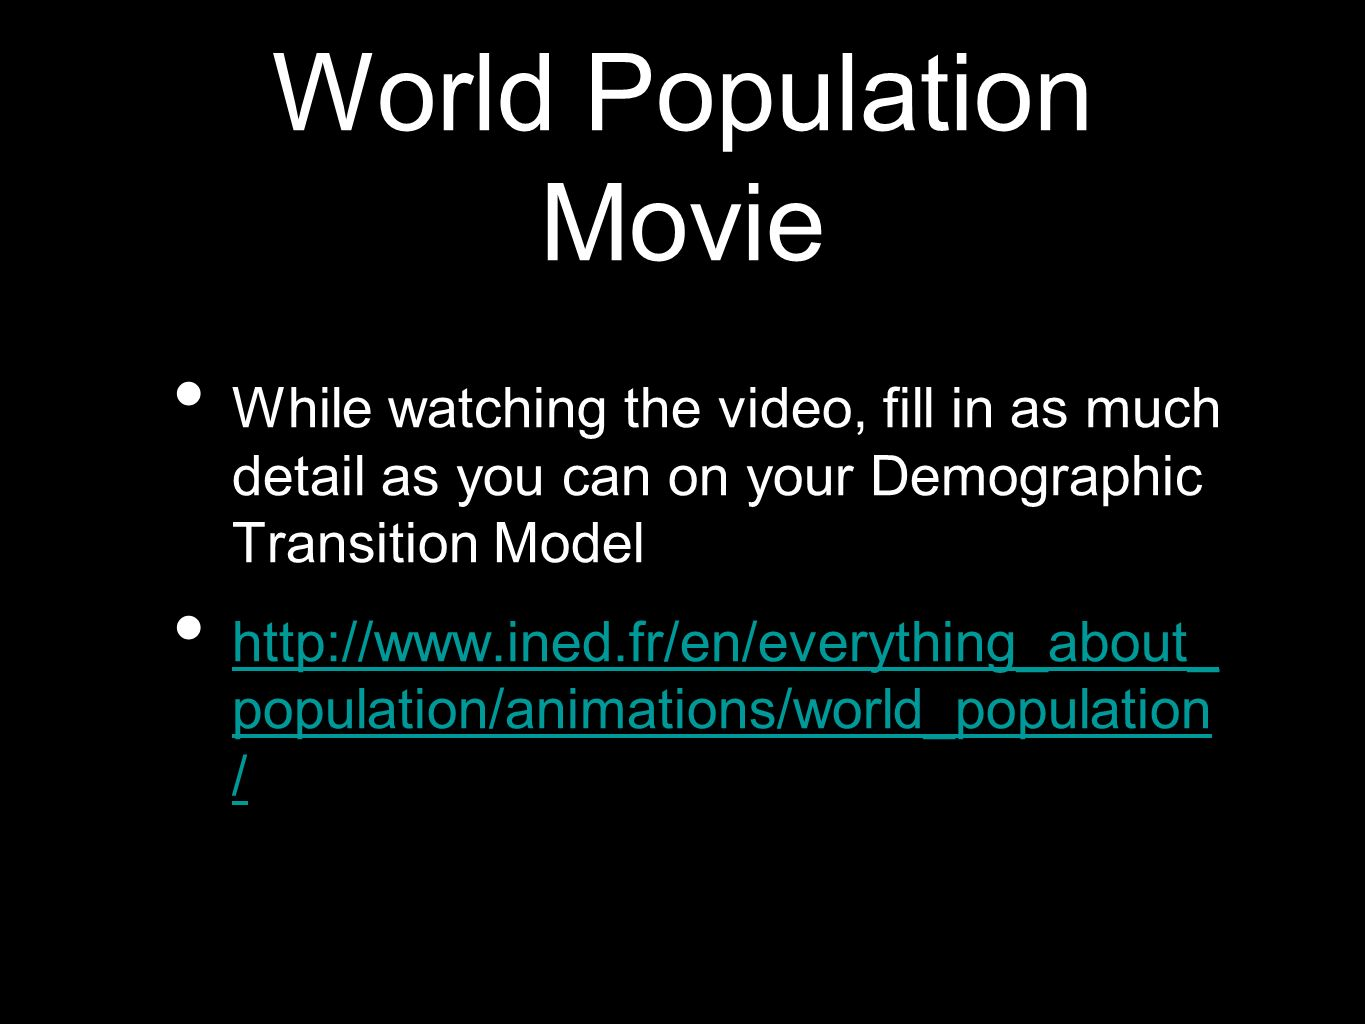 World Population Movie